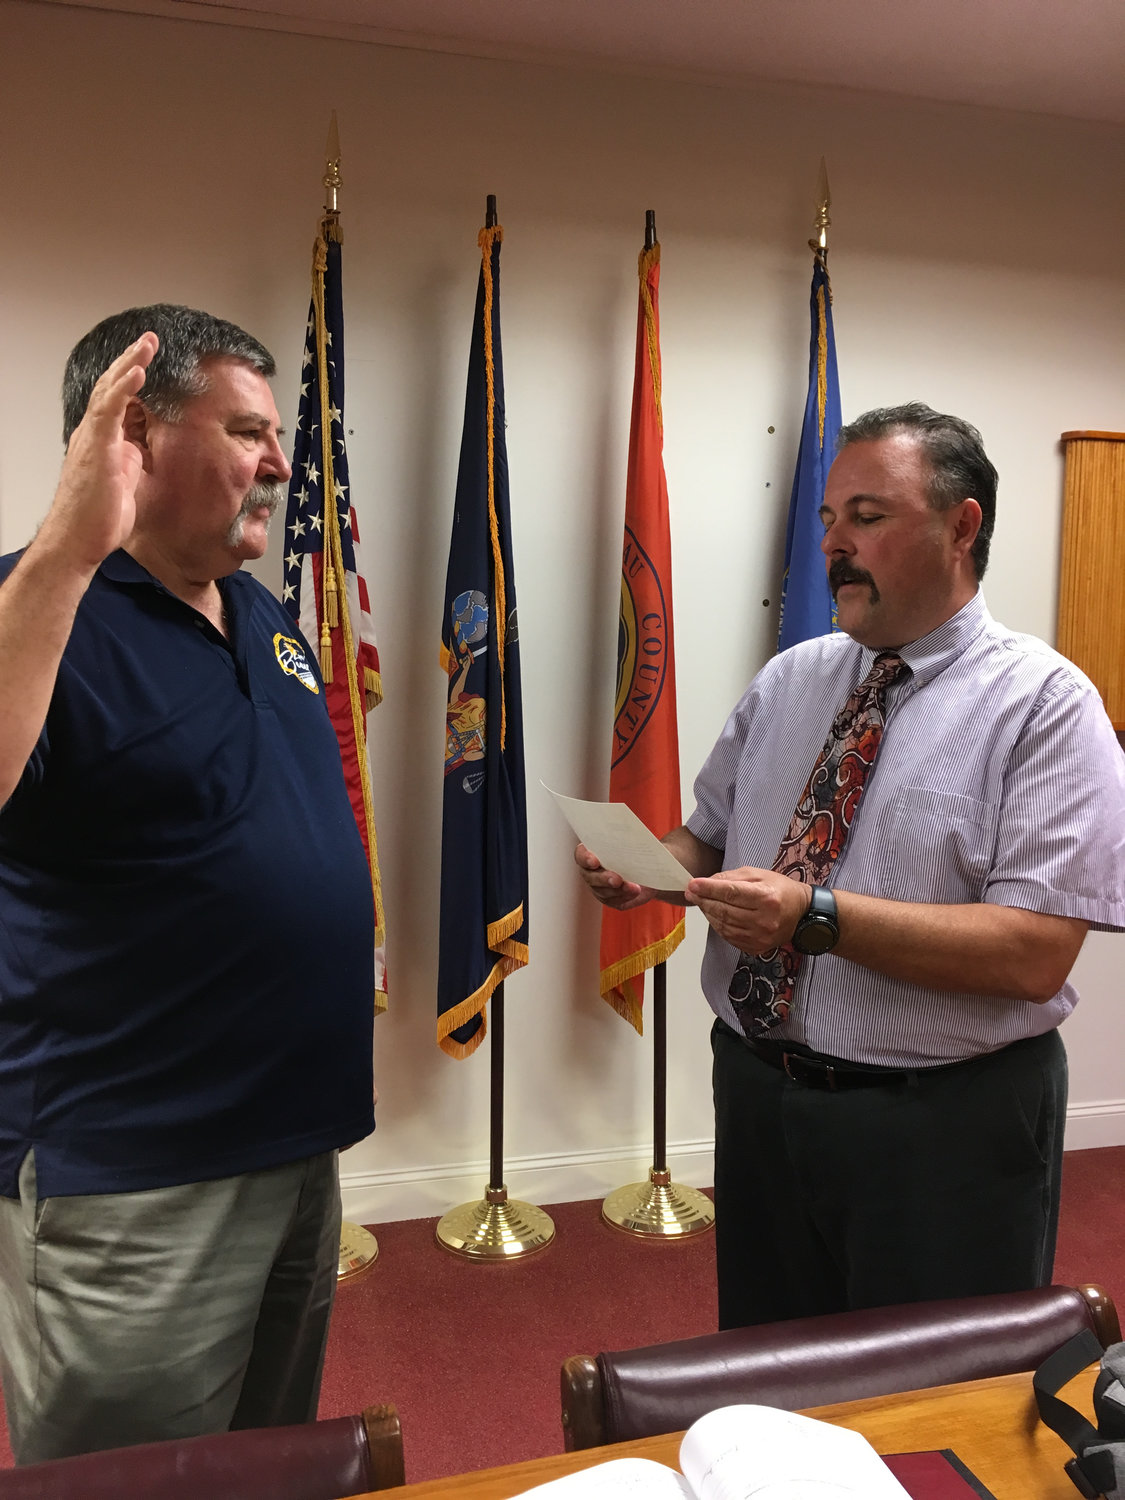 John Mirando, left, the city's commissioner of public works, was sworn in as acting city manager after a special meeting on Tuesday by City Clerk Dave Fraser.